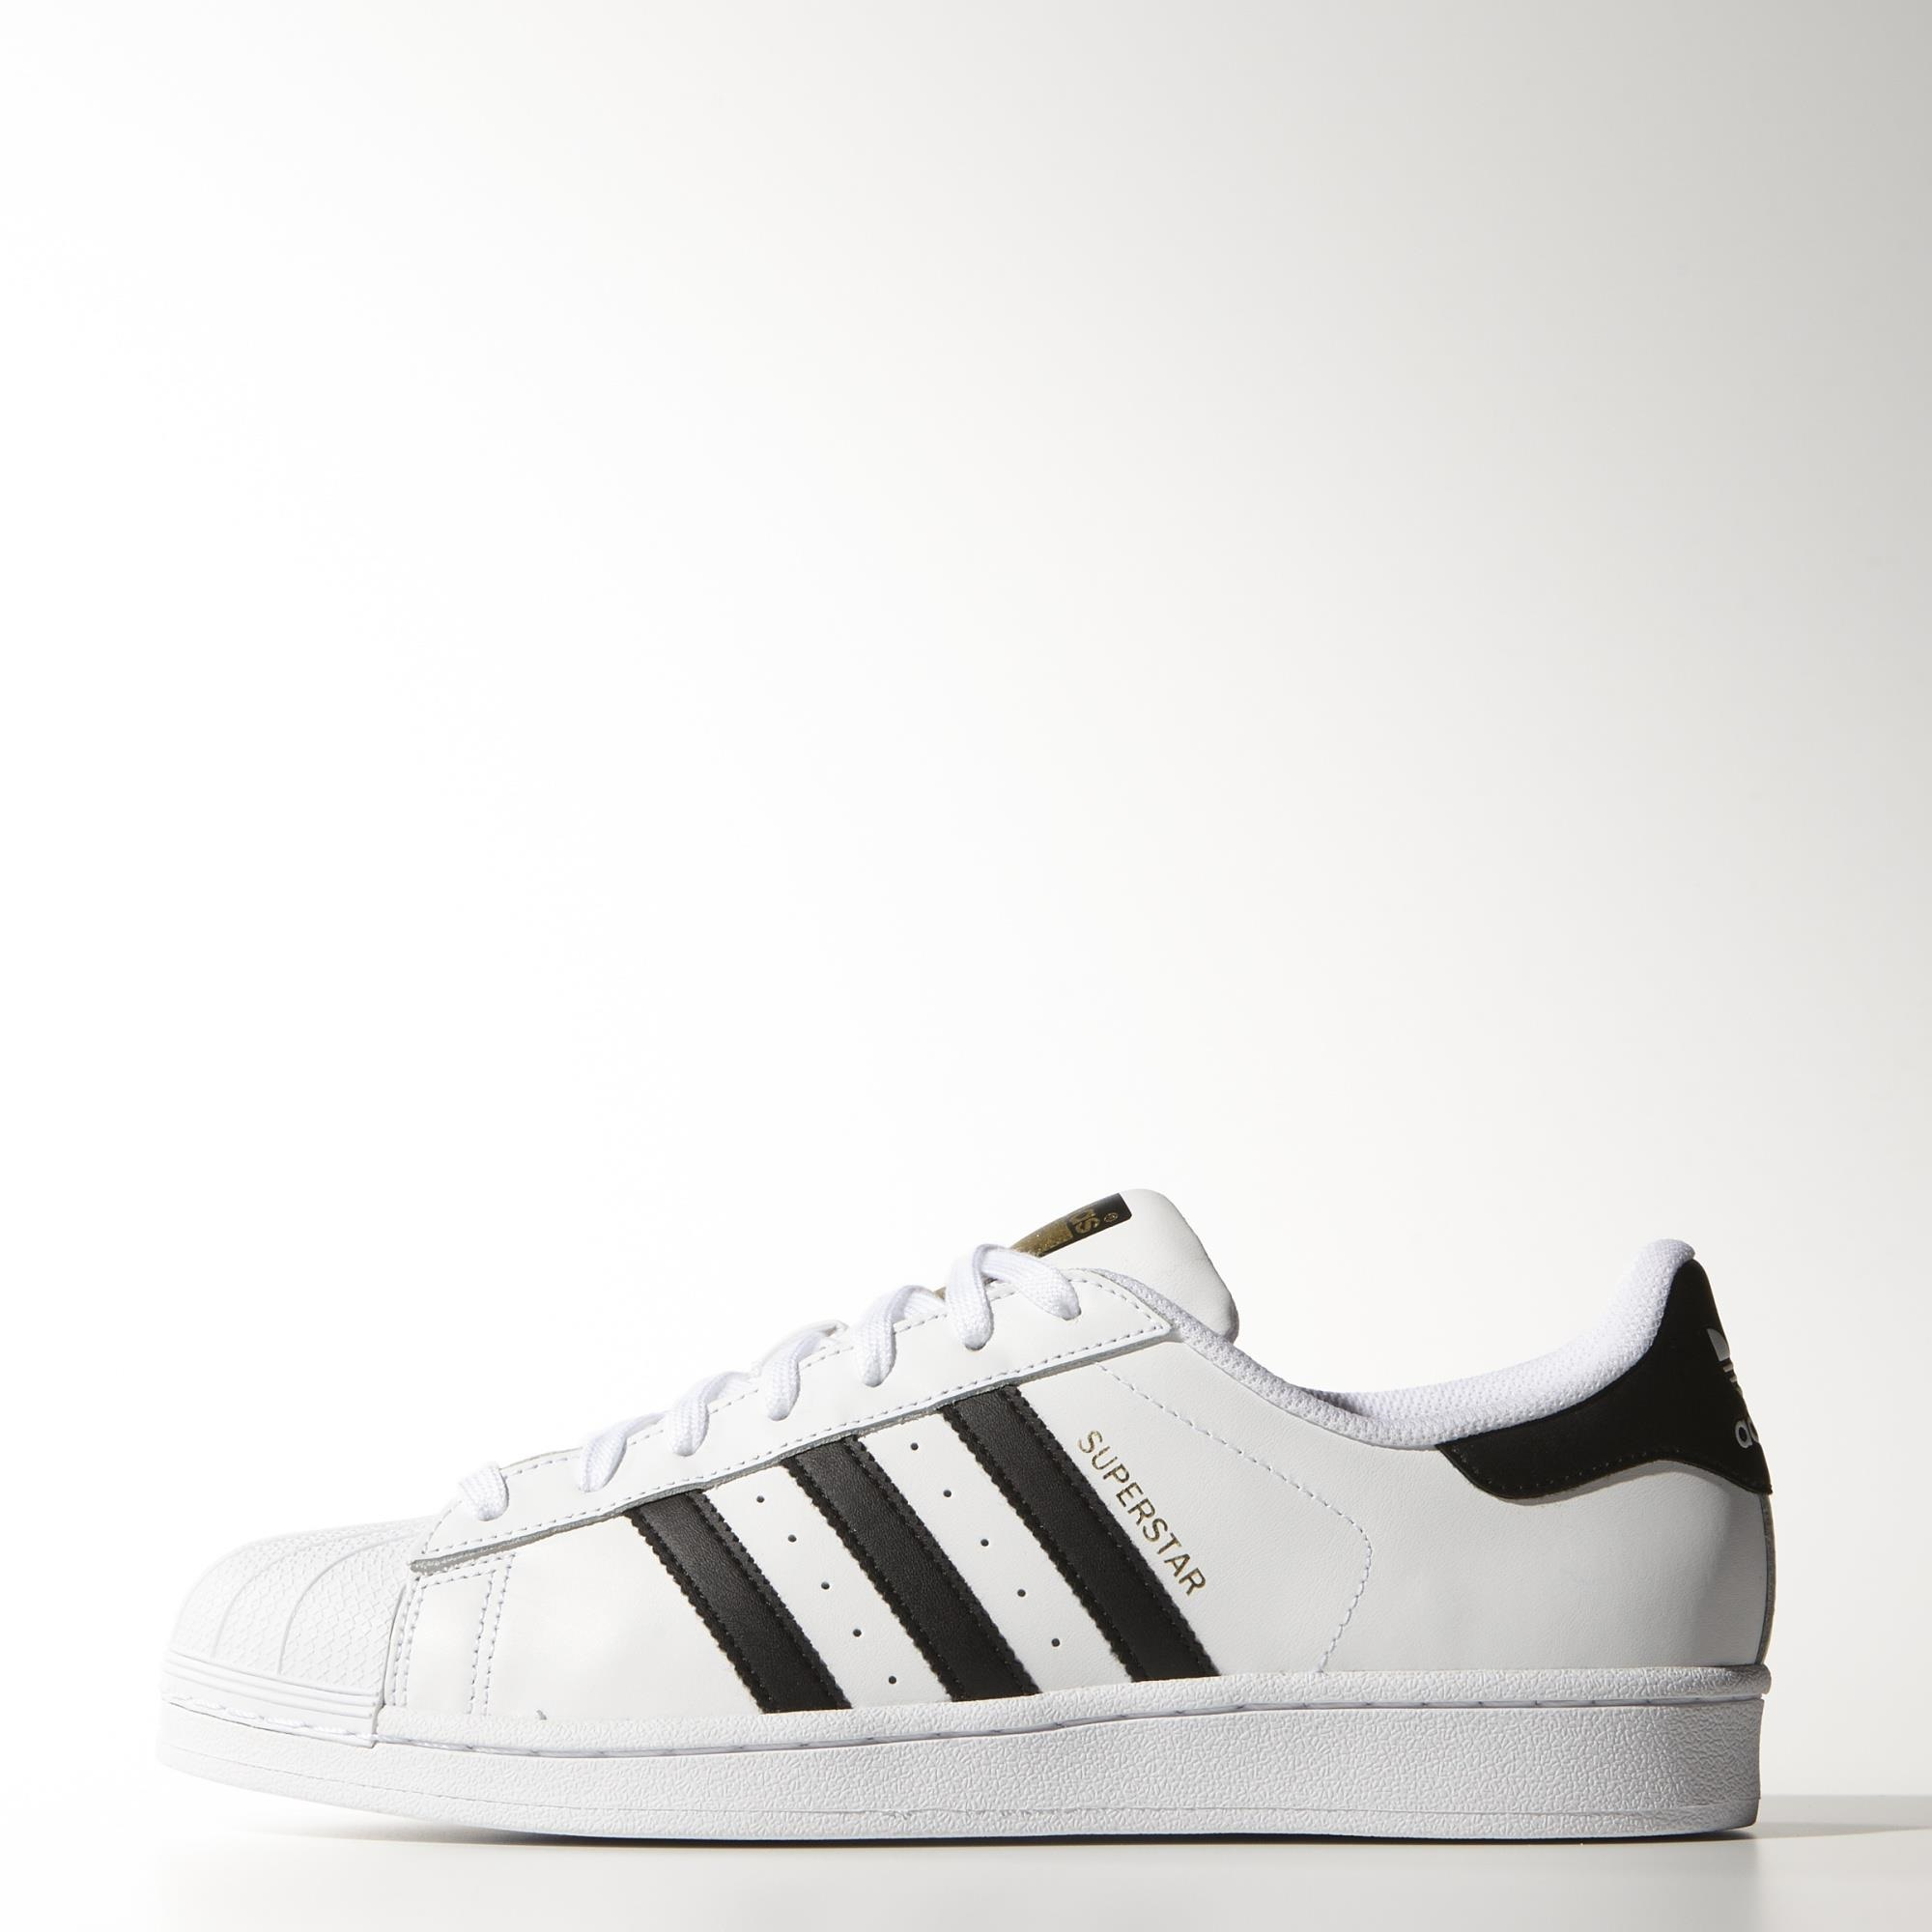 Adidas Superstar False Come Riconoscerle